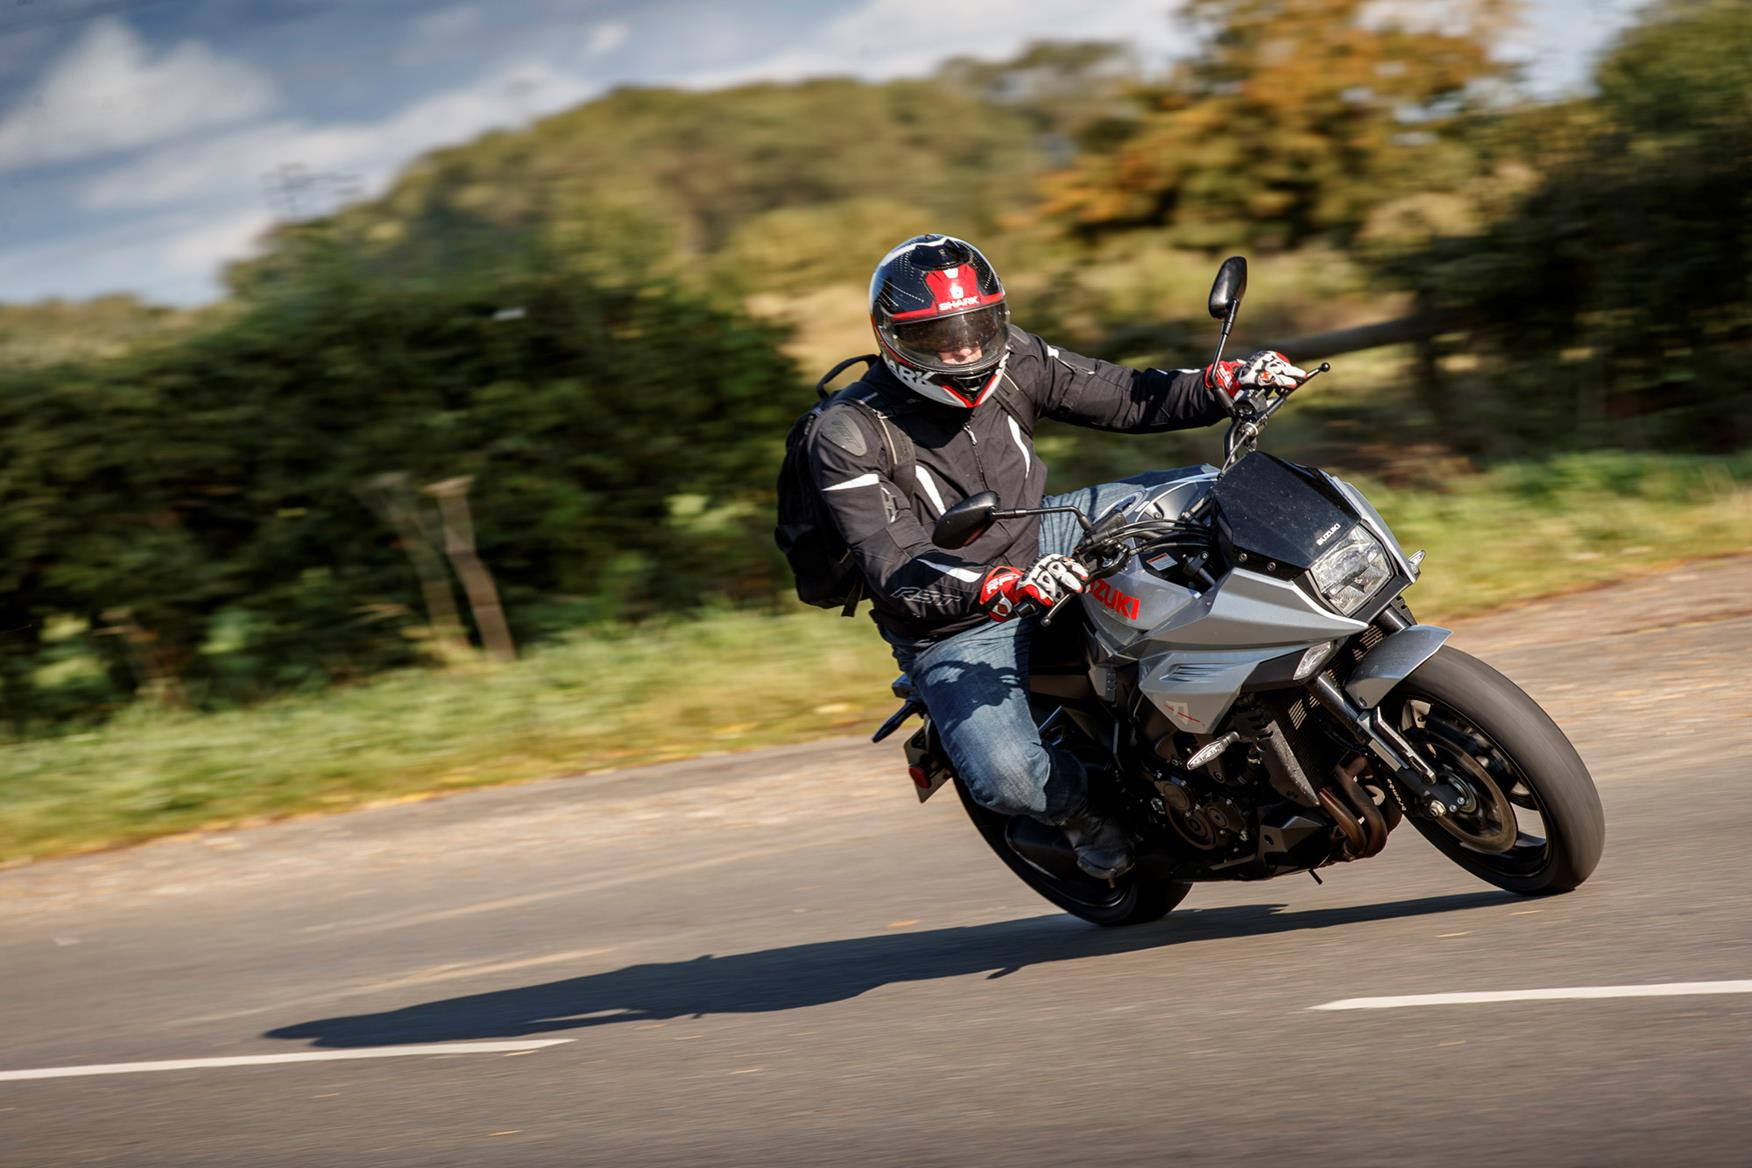 Riding the Suzuki Katana in the countryside